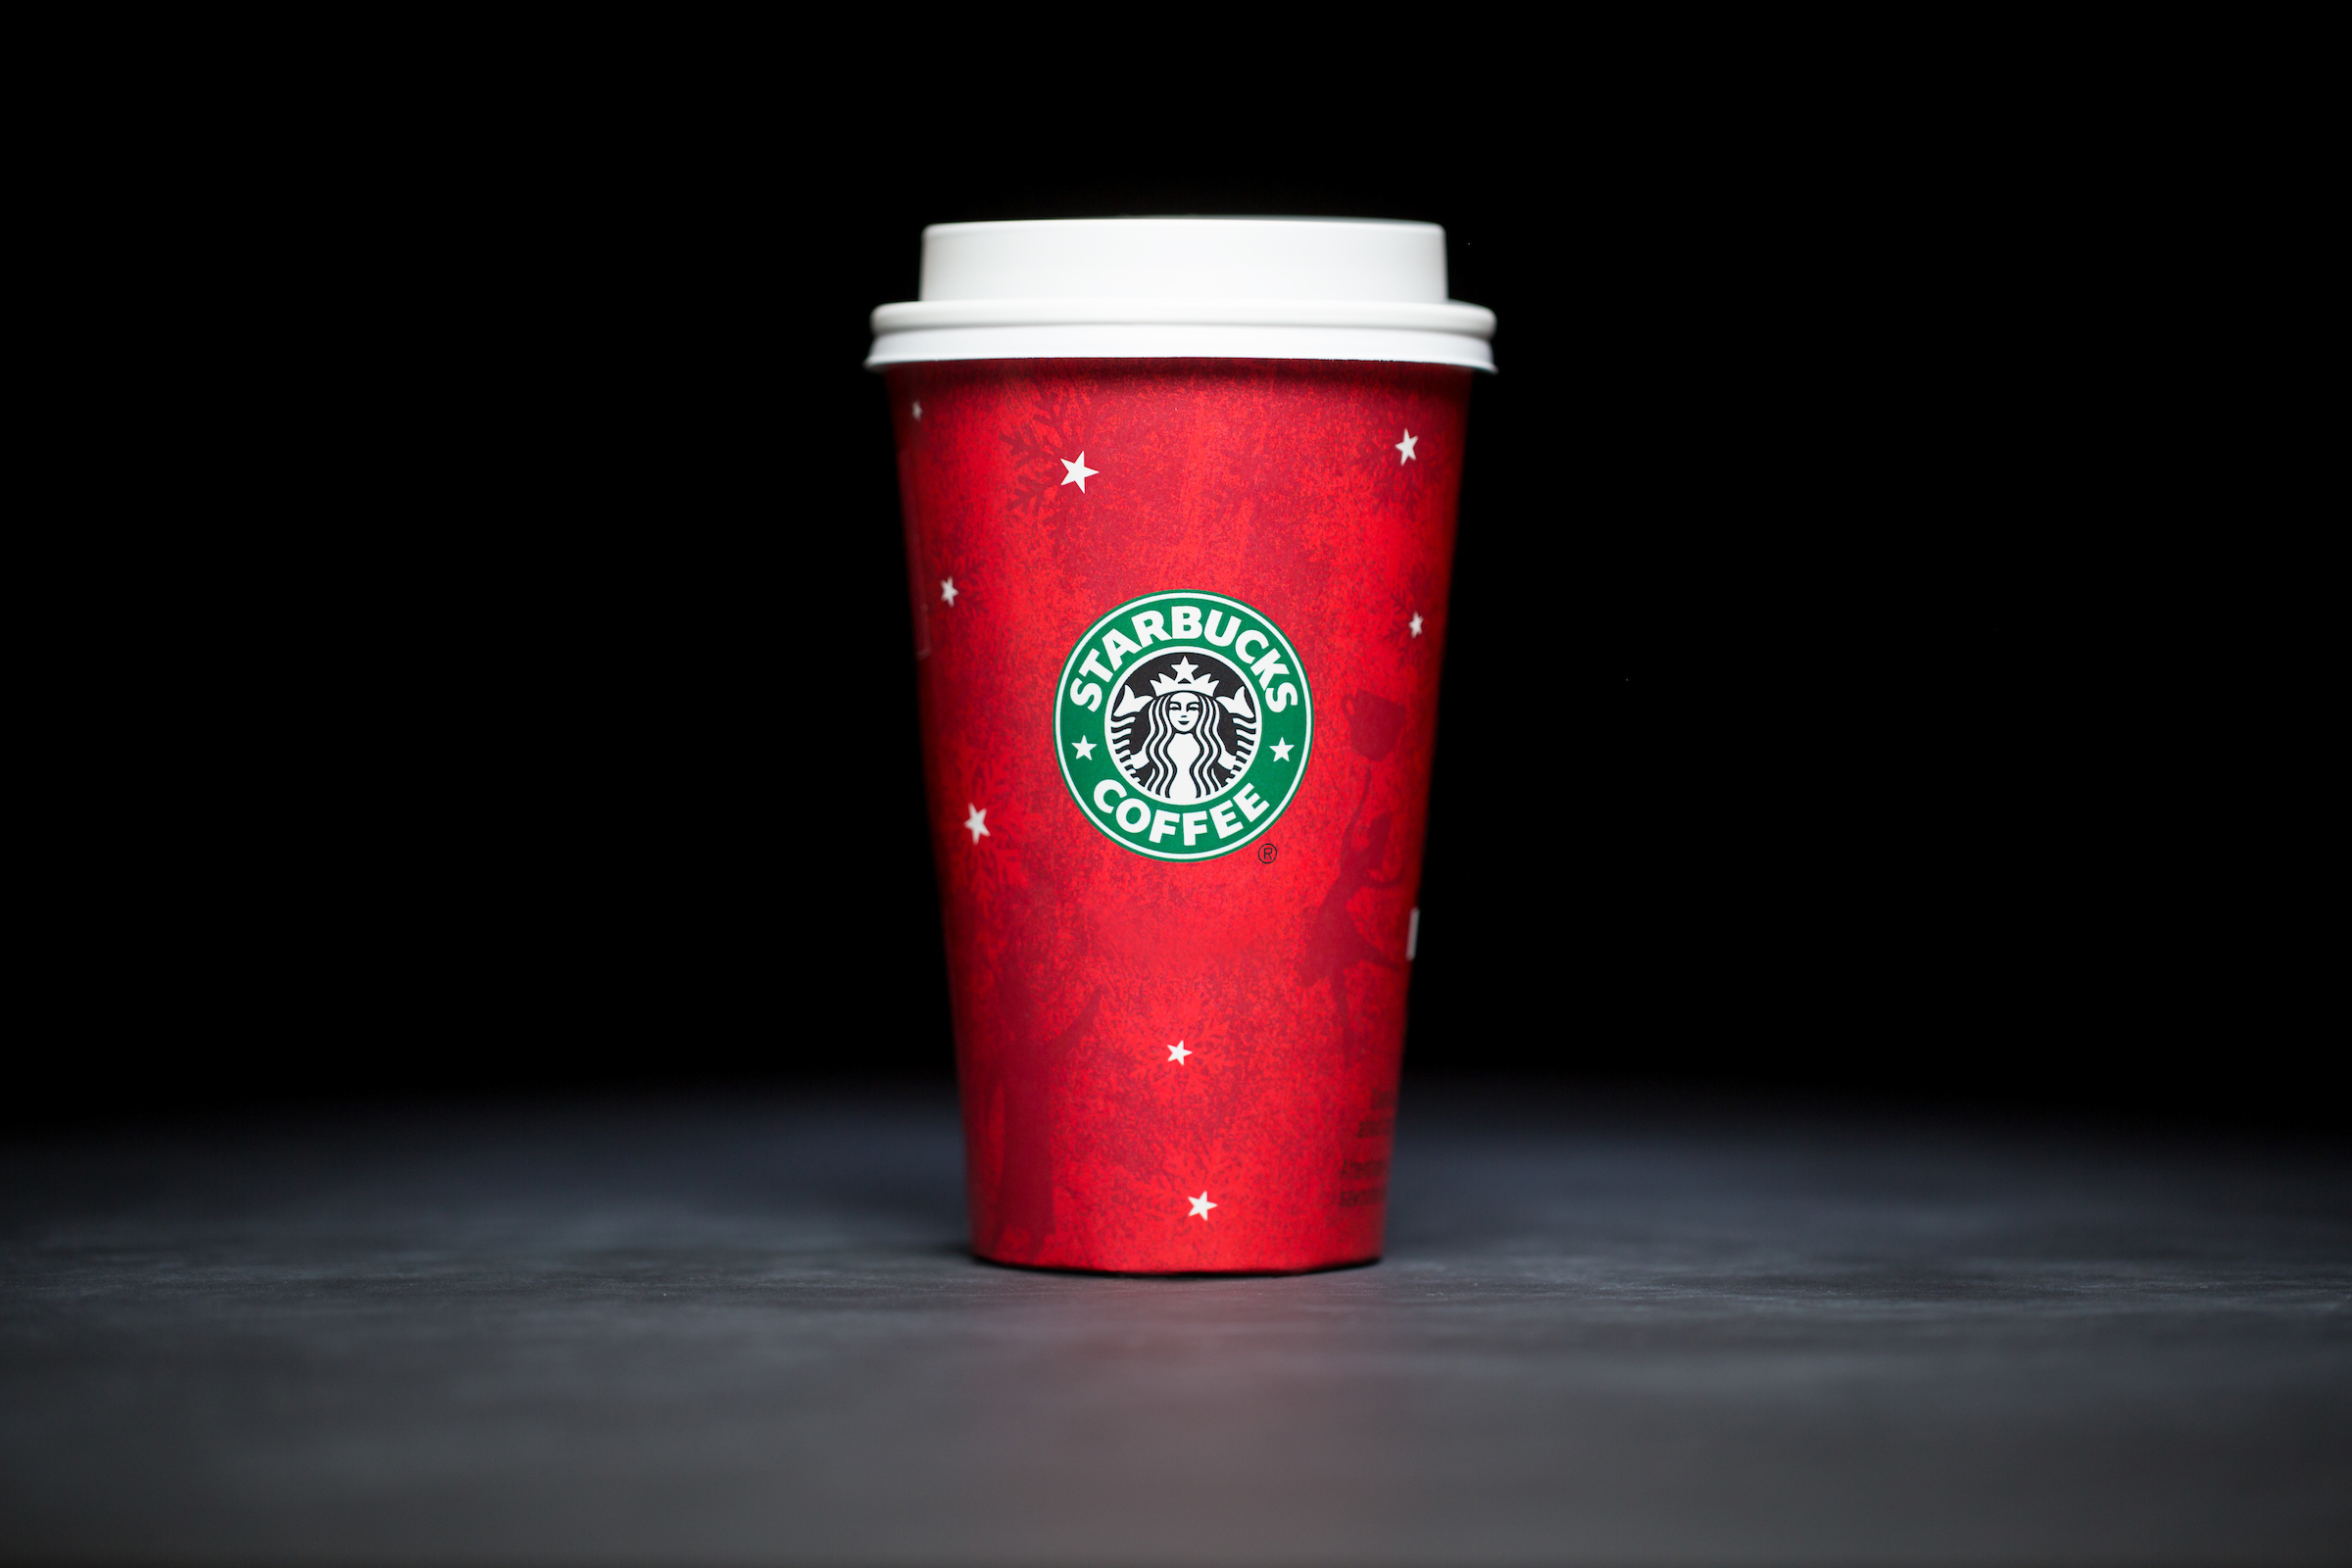 2003: For 20 years, Starbucks have released a range of holiday cup designs, most of them based around their world famous red cup. It's not easy to find the very first Starbucks holiday cups, which made their debut in stores in 1997. Few were saved, and electronic design files were lost in an earthquake in 2001. Even an Internet search is unyielding, with the cups having made their arrival long before the first selfie. But, we have them here! Click on for a photos of all 20 holidays cup designs. (Image: Joshua Trujillo/Cover Images)